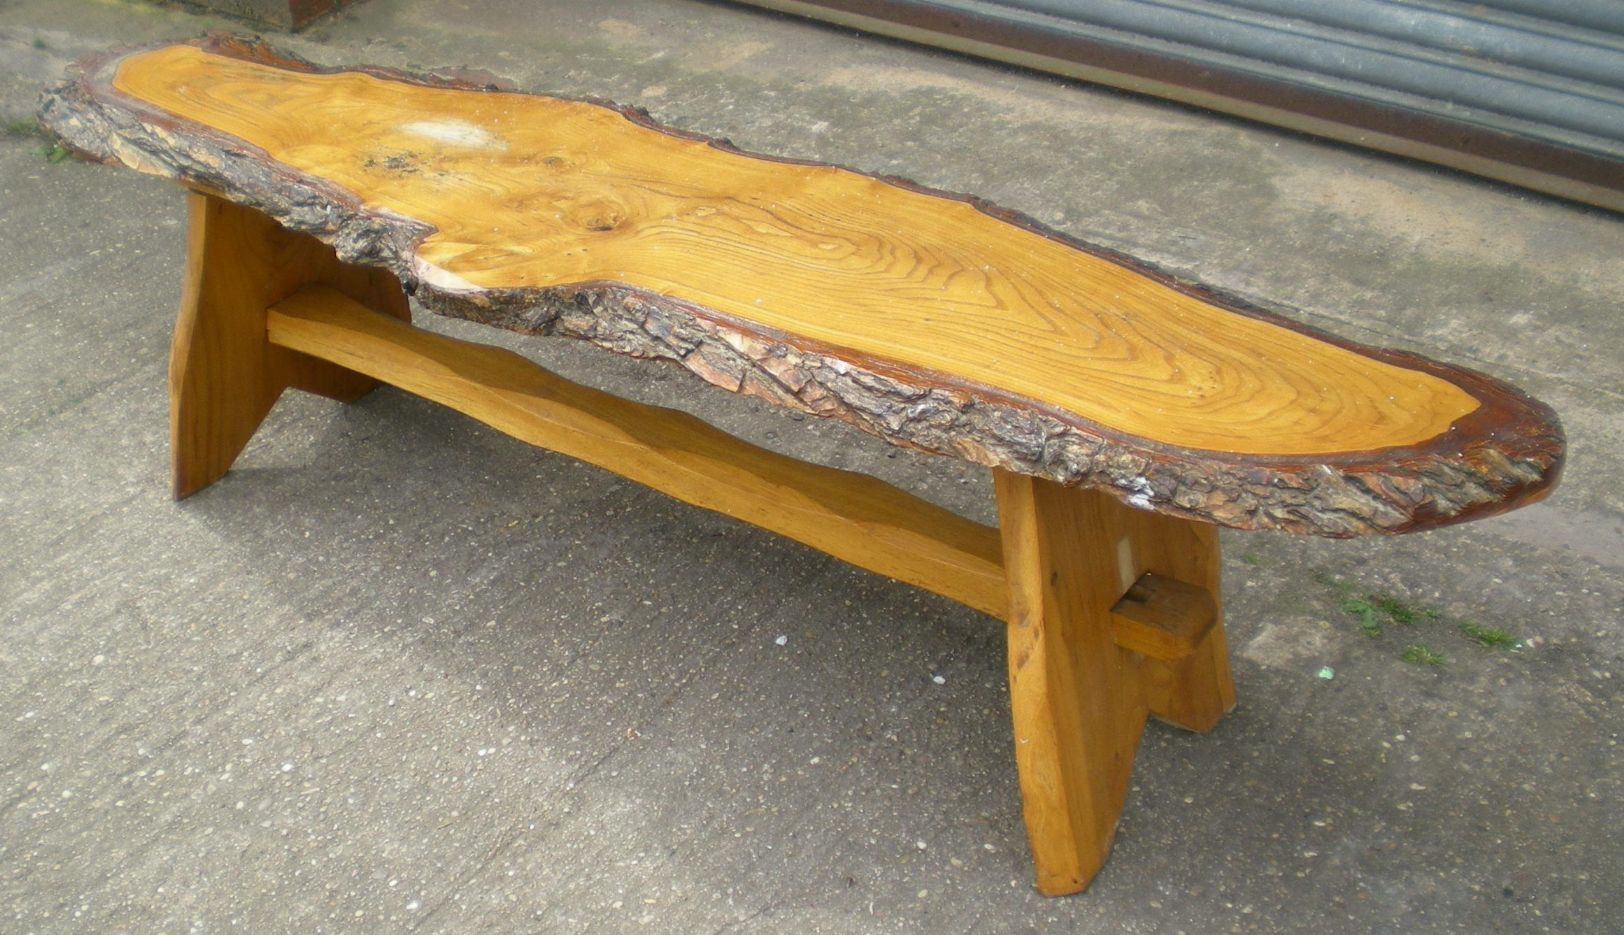 Rustic coffee tables unique and handmade from the log - Rustic log table rustic look long log style coffee table